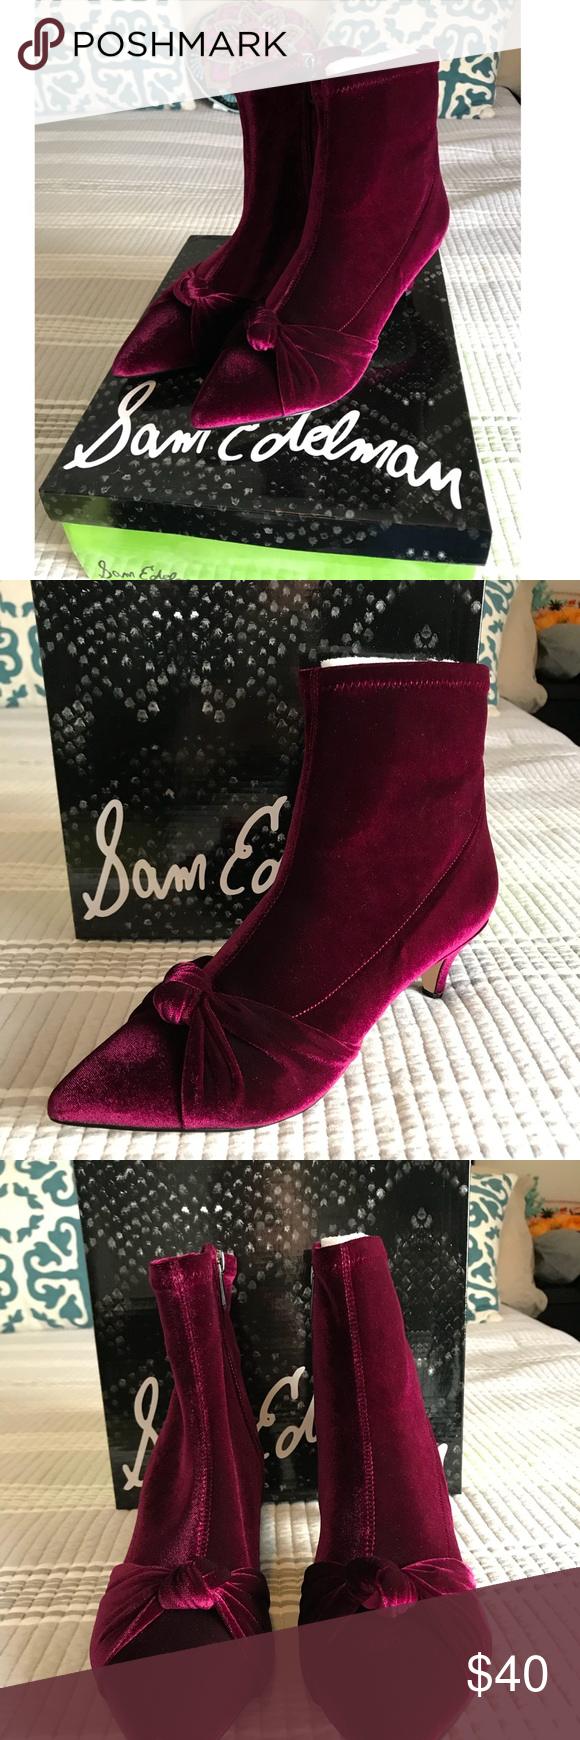 216eb0e82 Sam Edelman Keena Knot Bootie - Size 8.5 New. Never worn. Velvet Sam  Edelman Keena Knot Bootie - Size 8.5 Sam Edelman Shoes Ankle Boots   Booties